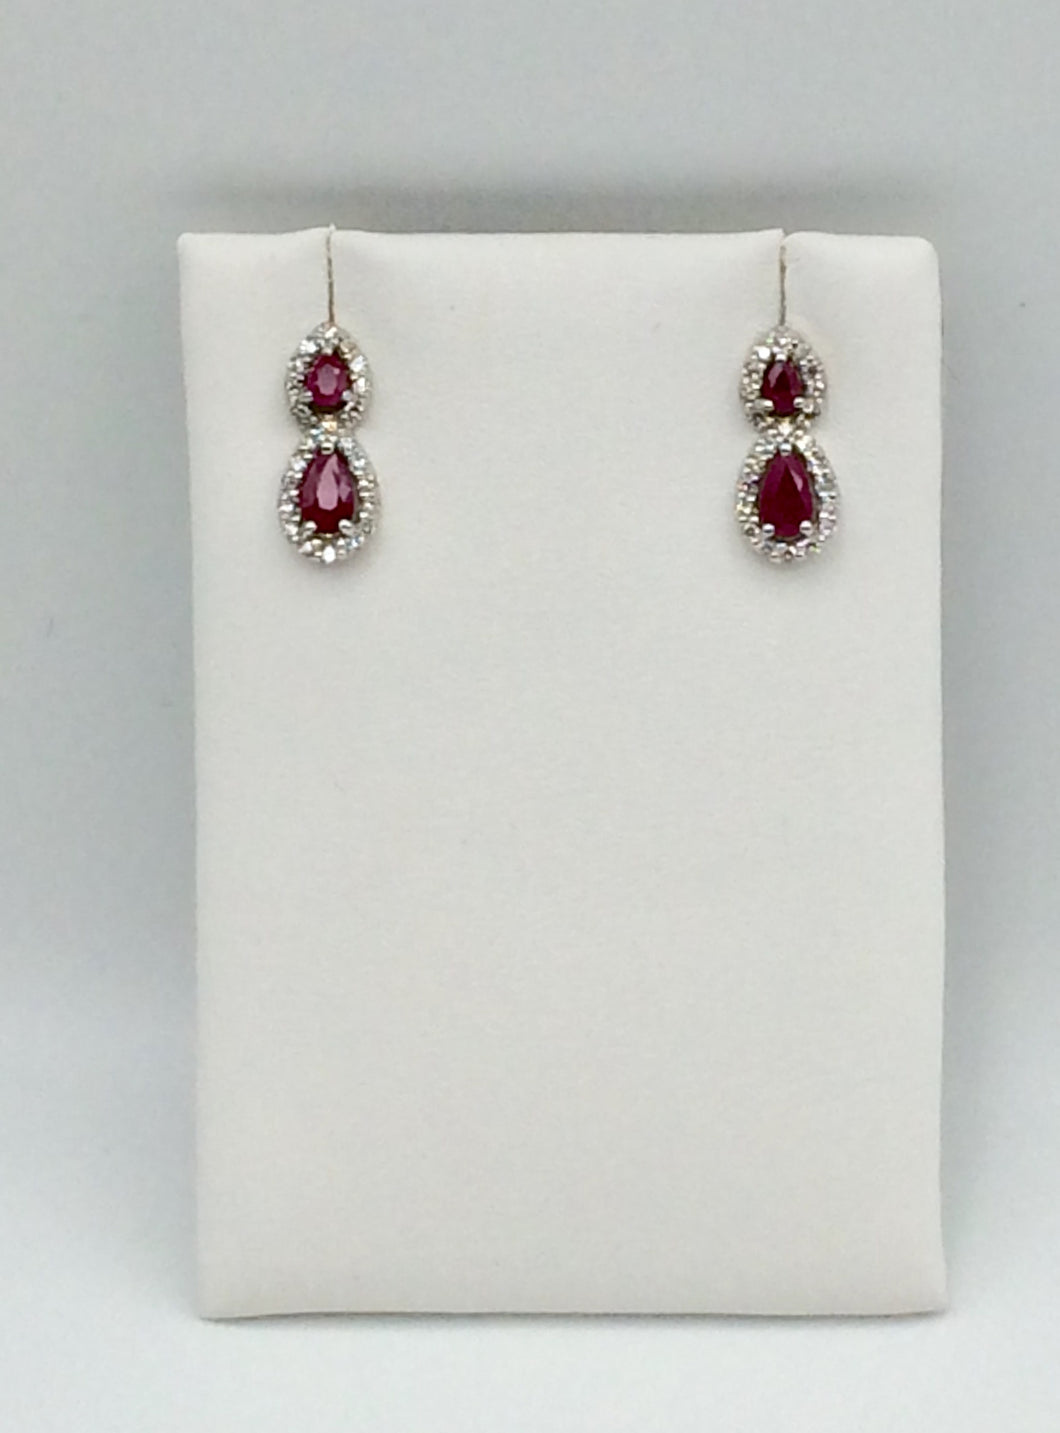 10K White Gold Ruby Earrings